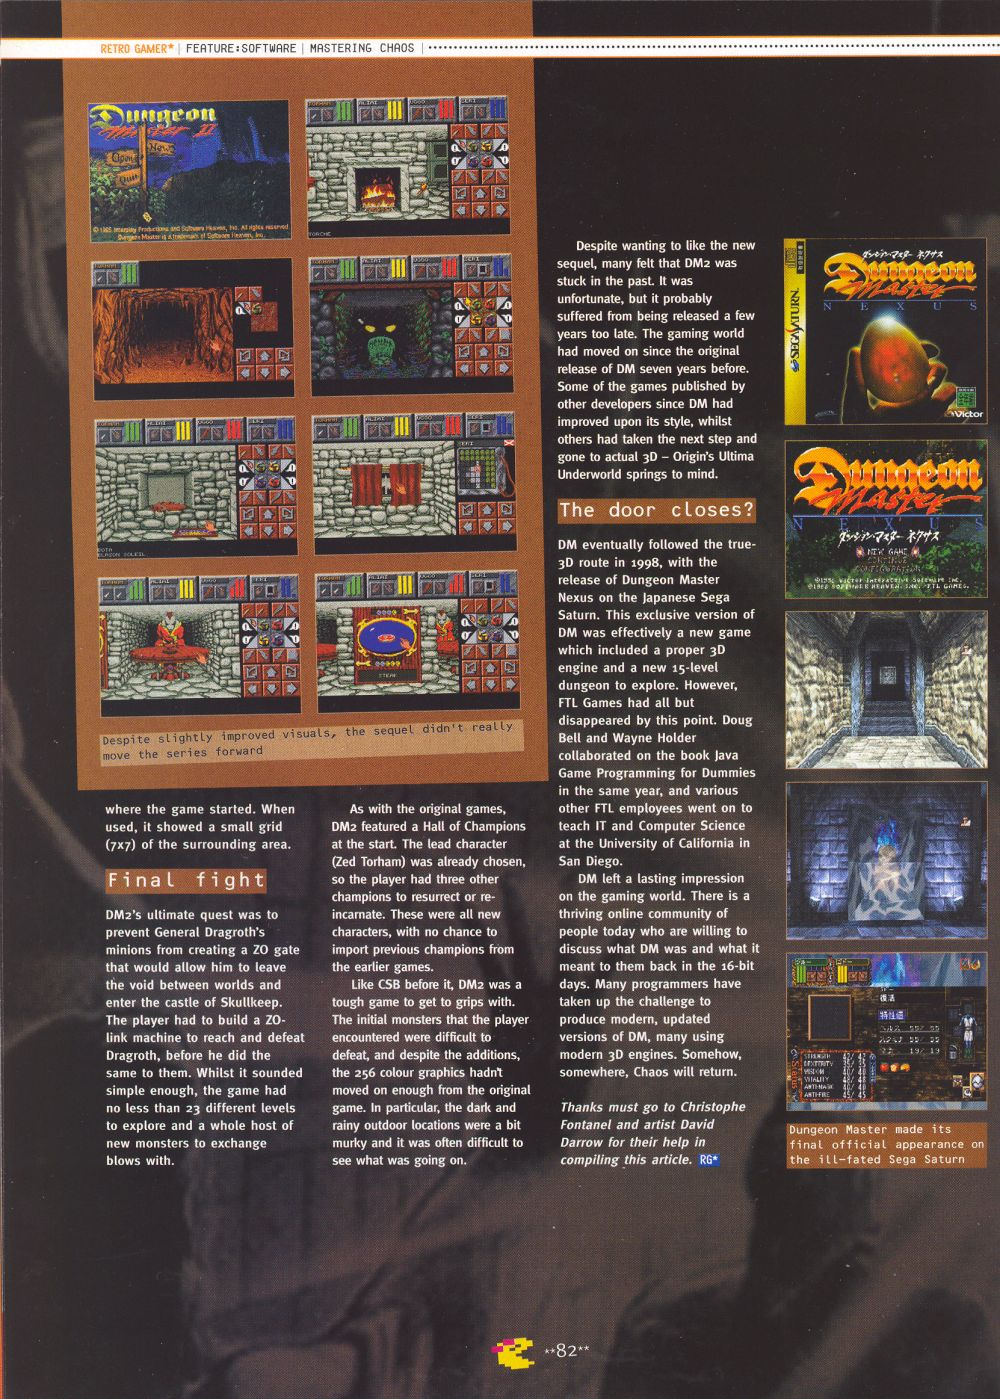 An article titled 'Mastering Chaos', printed in issue 10 of 'Retro Gamer' and written by Richard Hewison Page 11